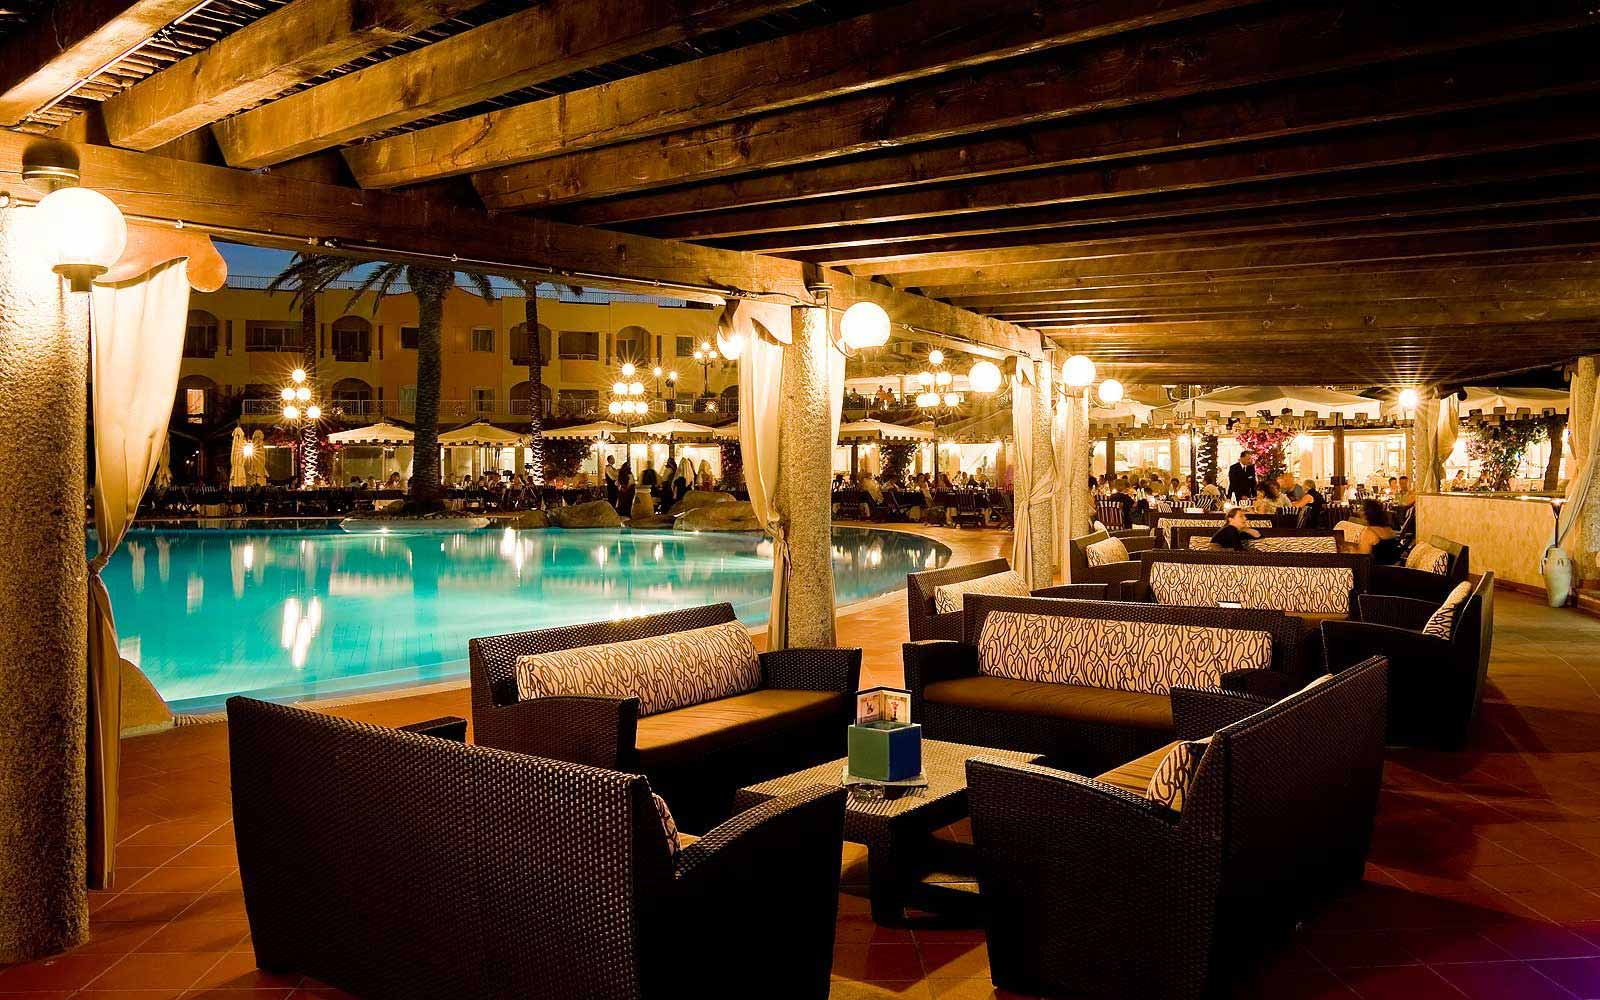 Pullman Timi Ama Sardegna's pool bar at night